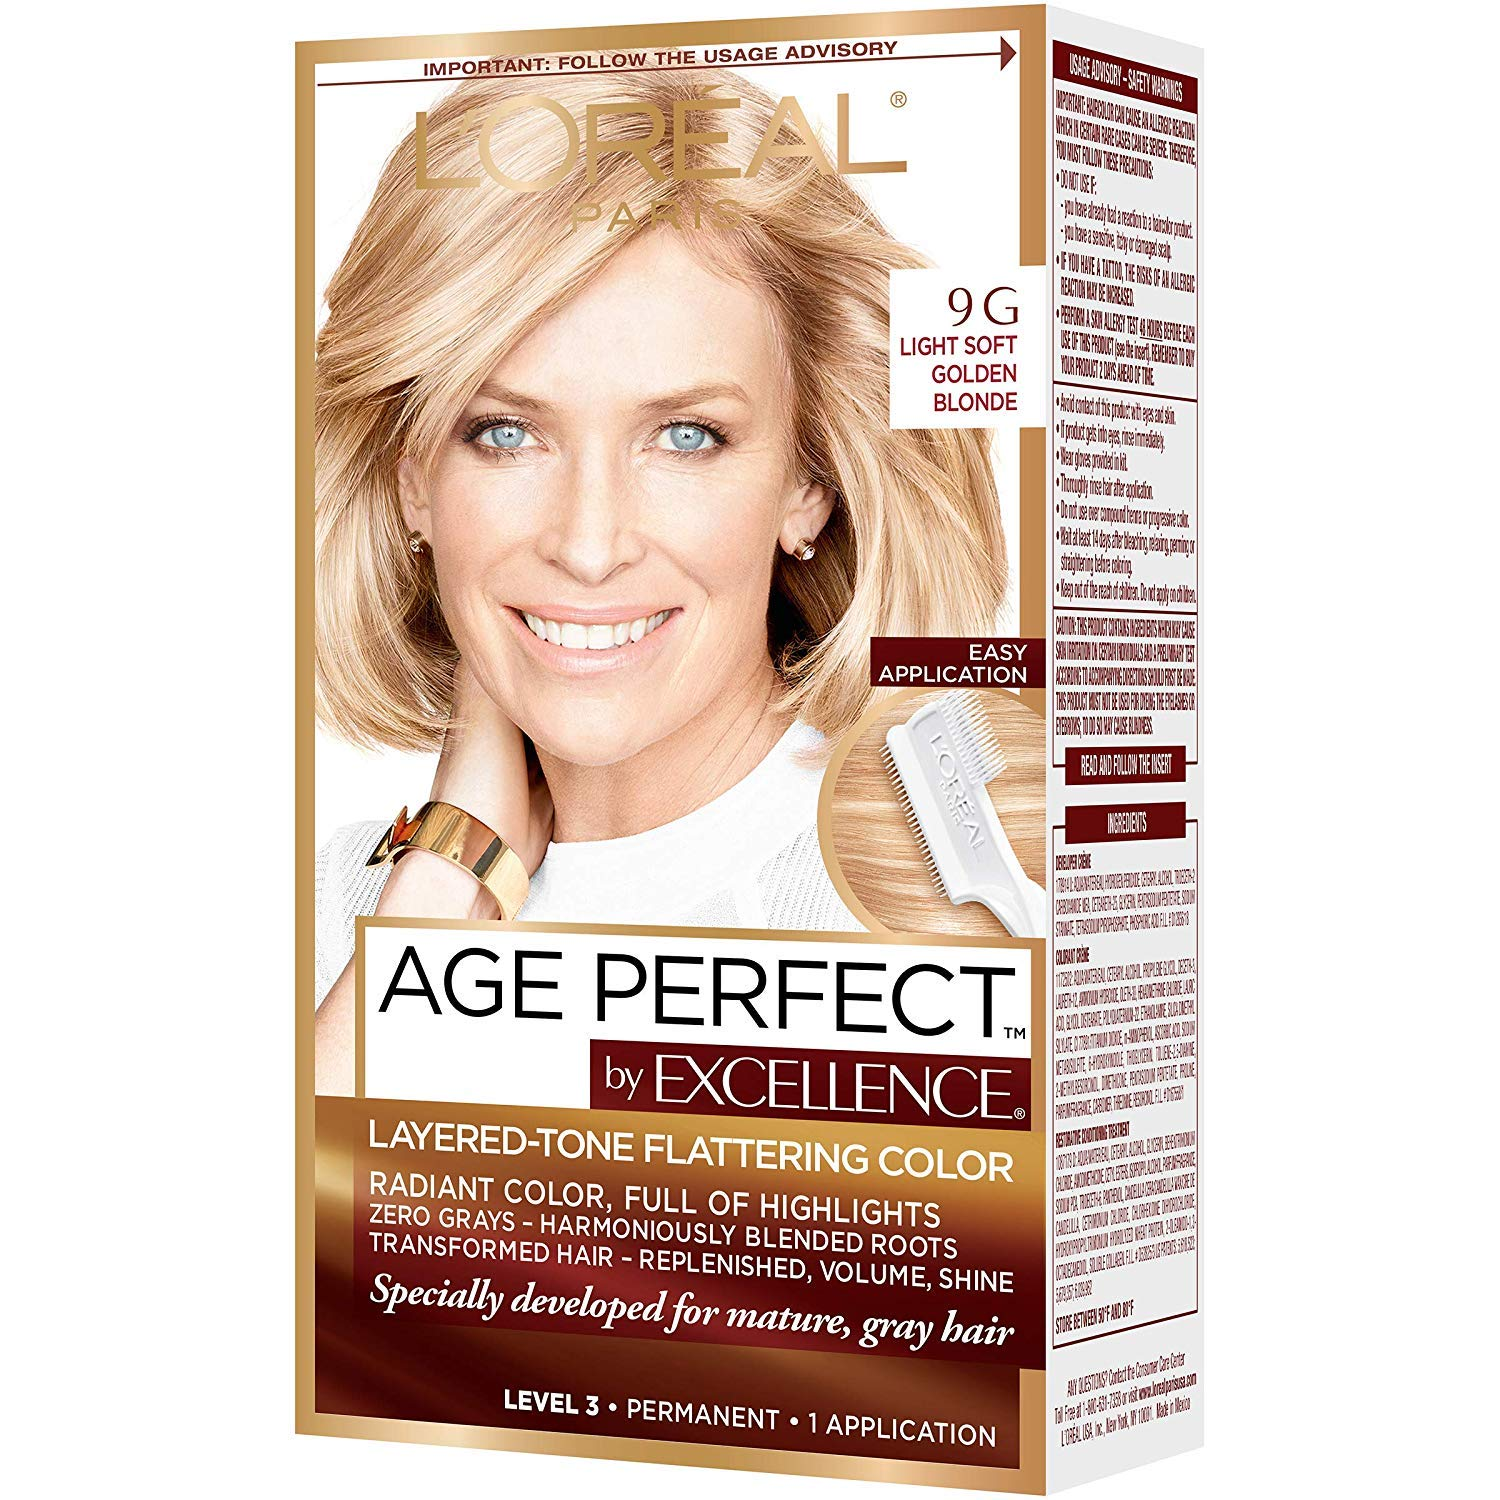 L'Oreal Paris ExcellenceAge Perfect Layered Tone Flattering Color, 9G Light Soft Golden Blonde (Packaging May Vary)